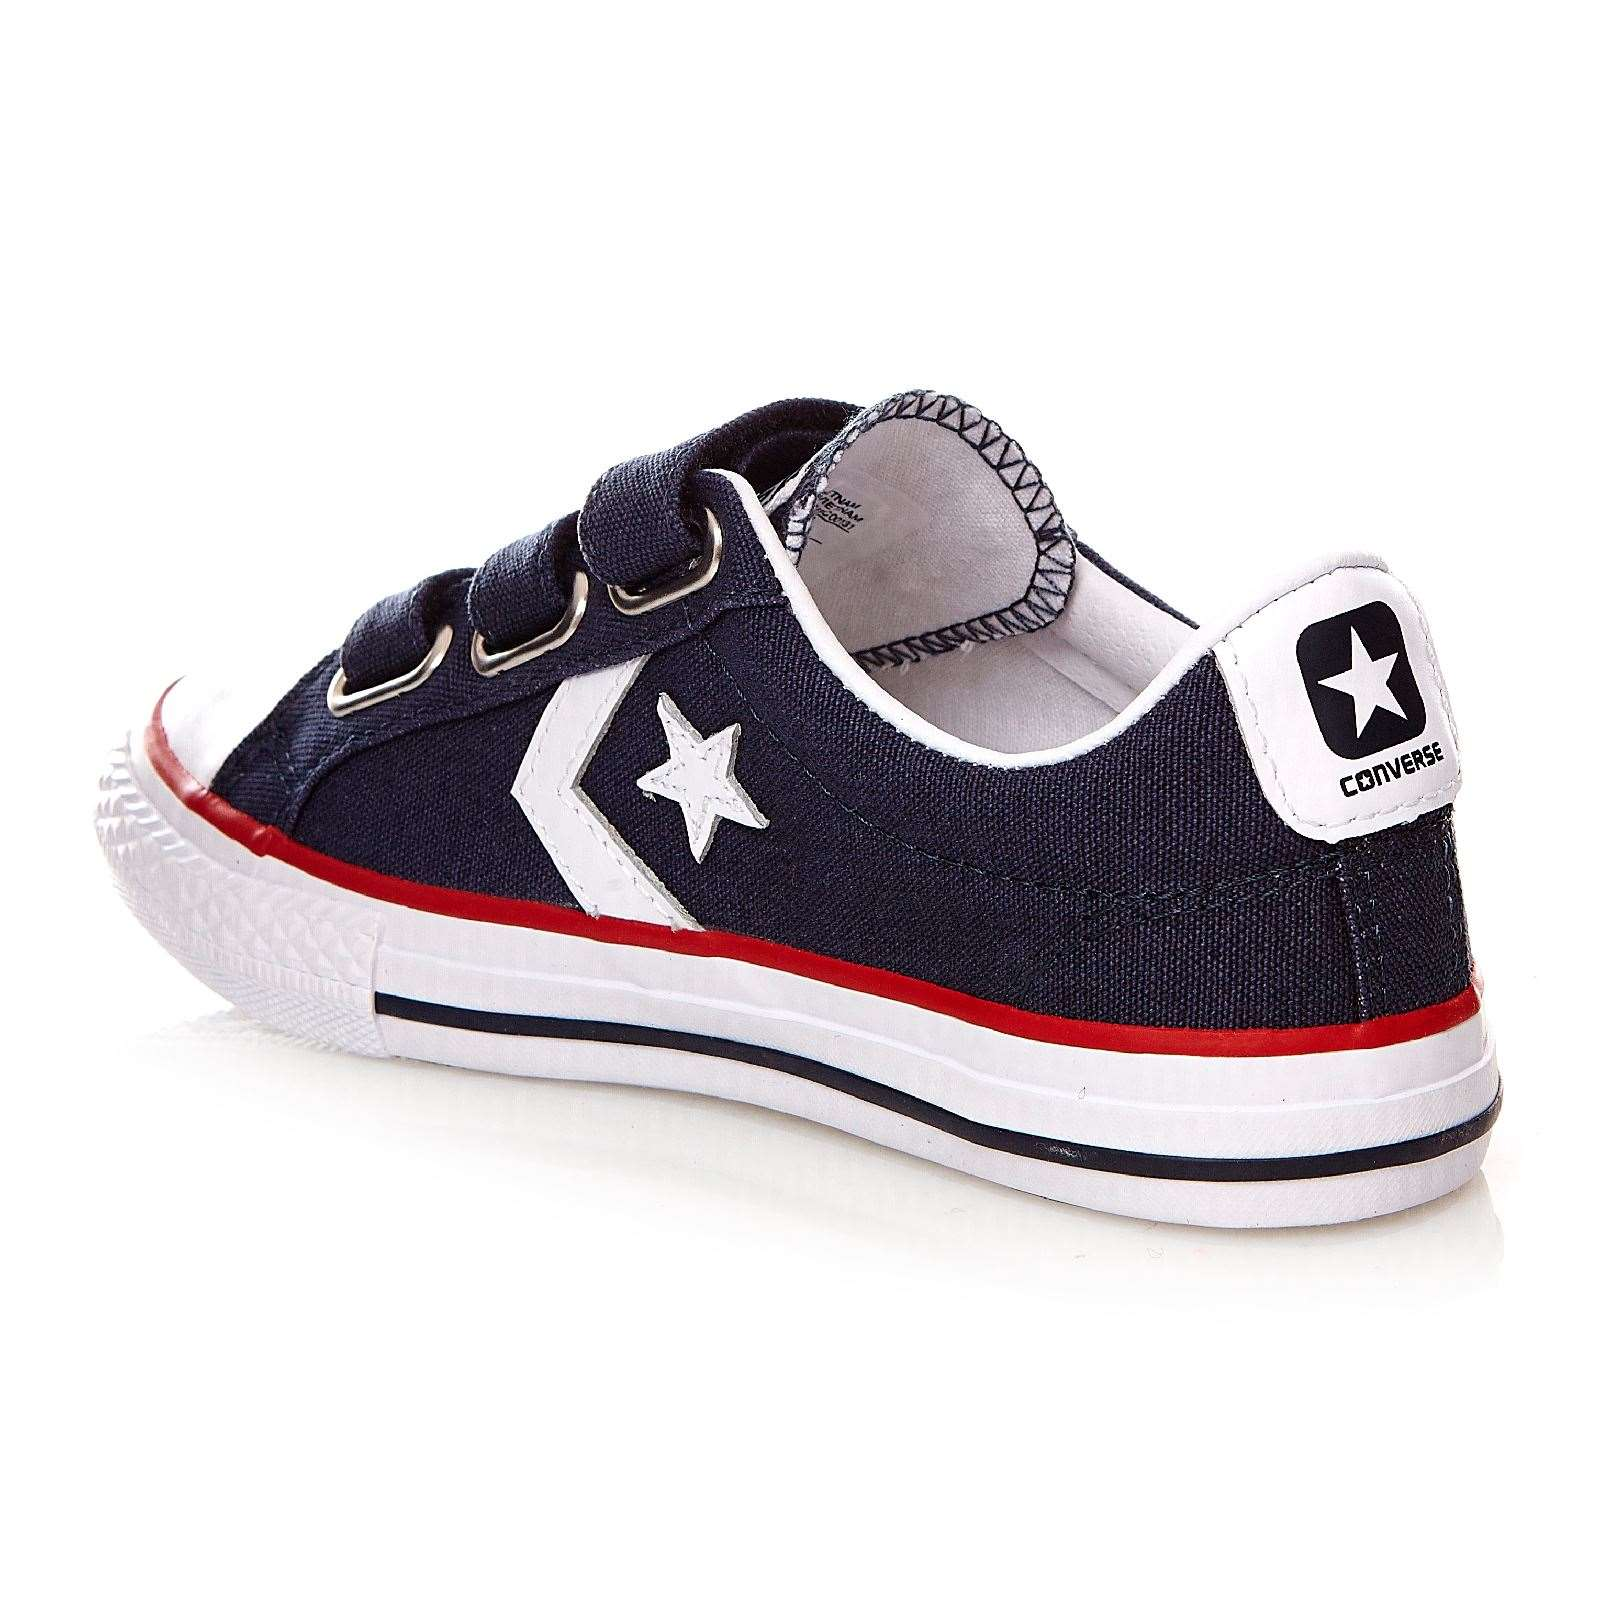 converse star player 3v ox baskets mode bleu marine brandalley. Black Bedroom Furniture Sets. Home Design Ideas